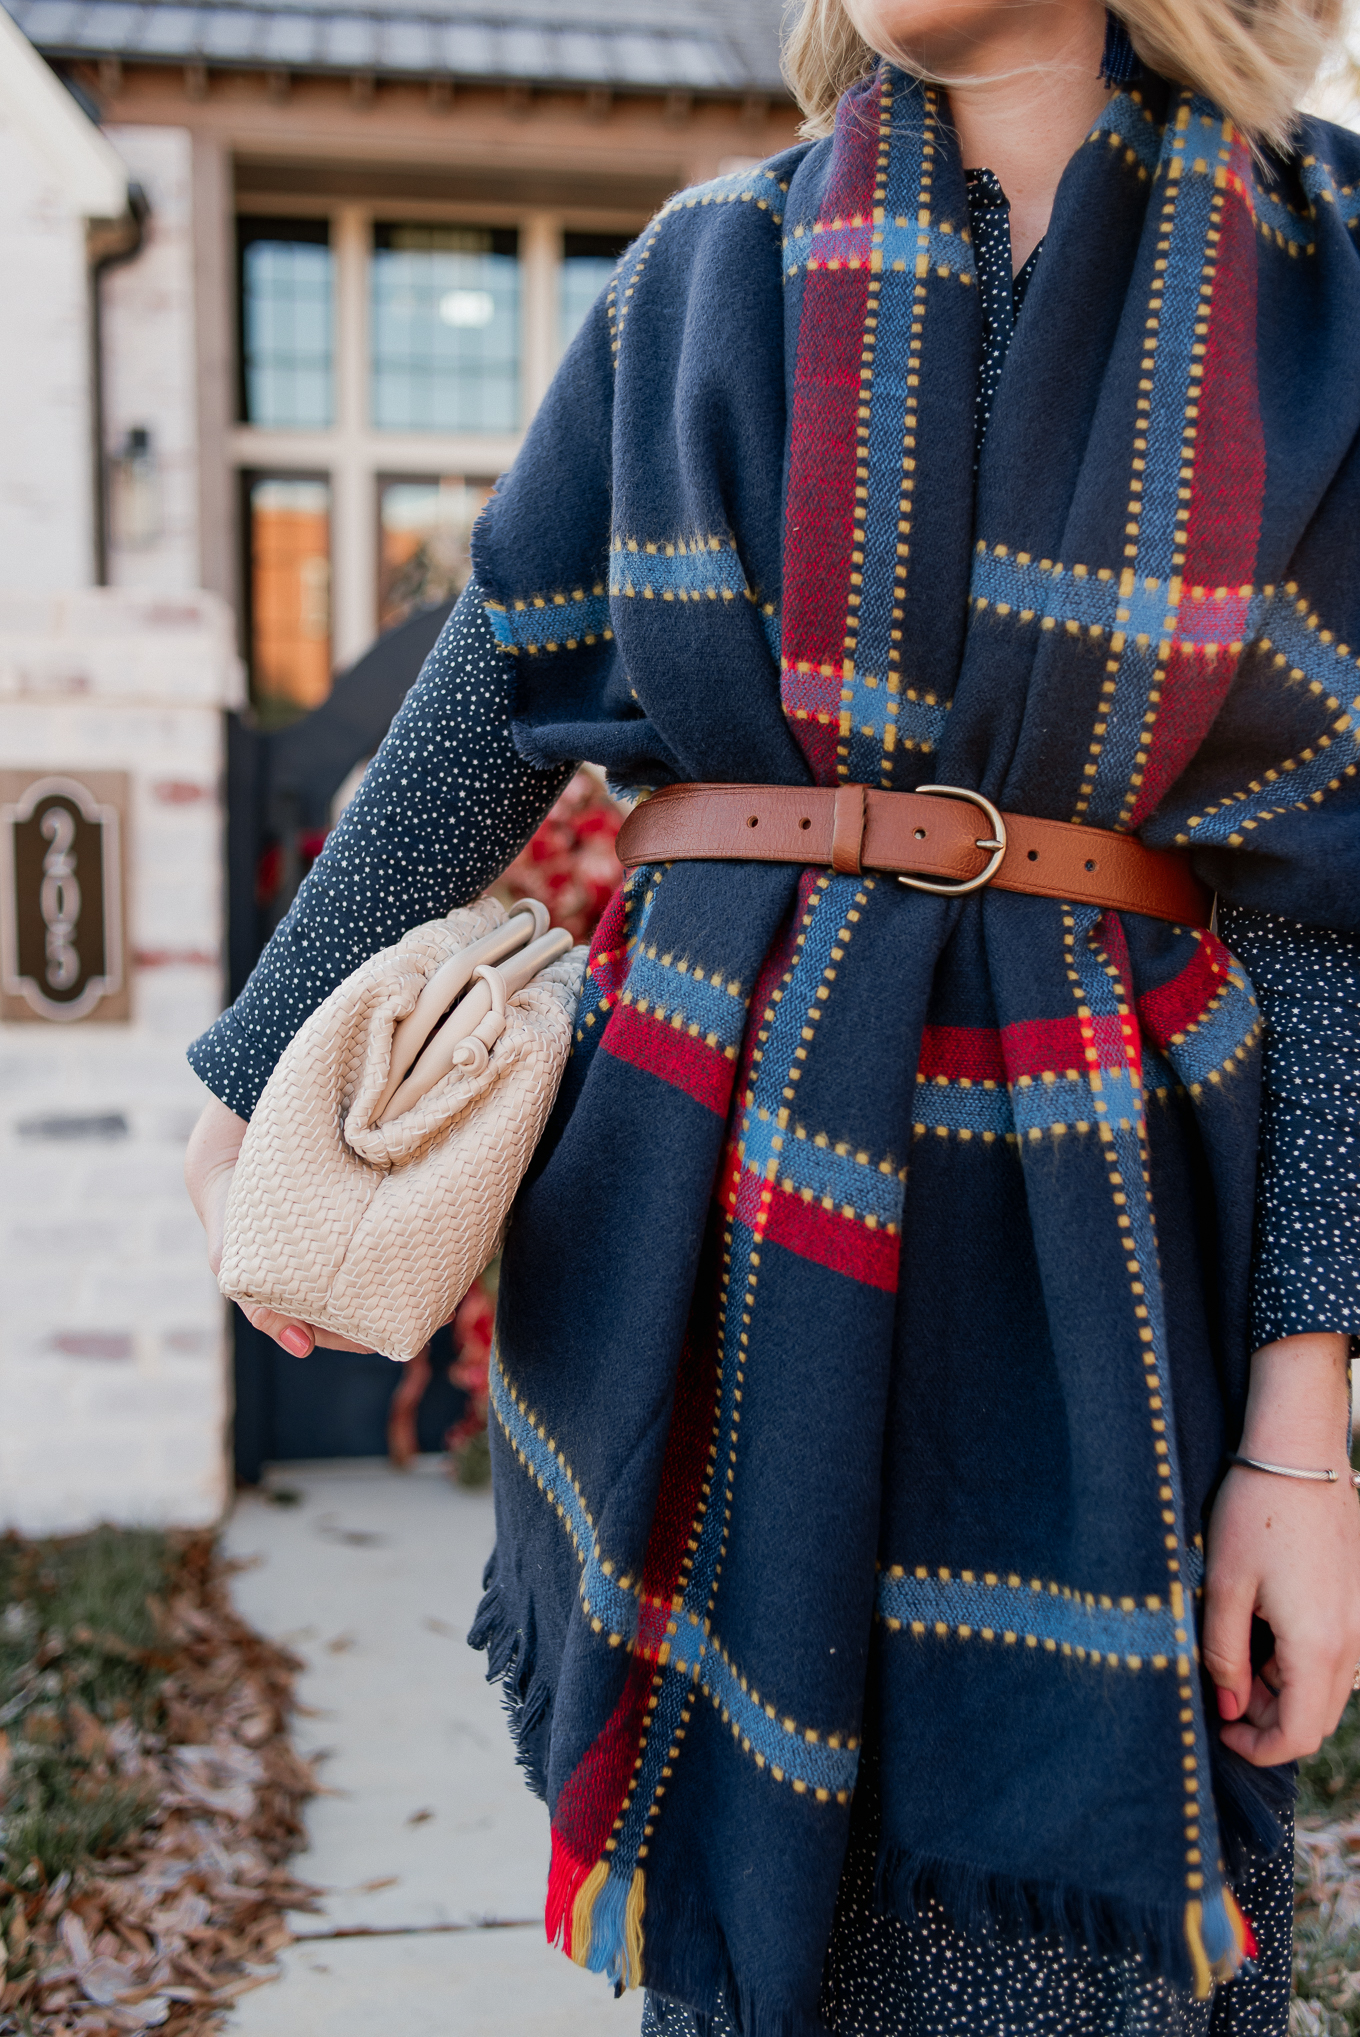 Laura Leigh of Louella Reese shares how to style a scarf as a vest this winter season plus a great BOTTEGA VENETA pouch dupe